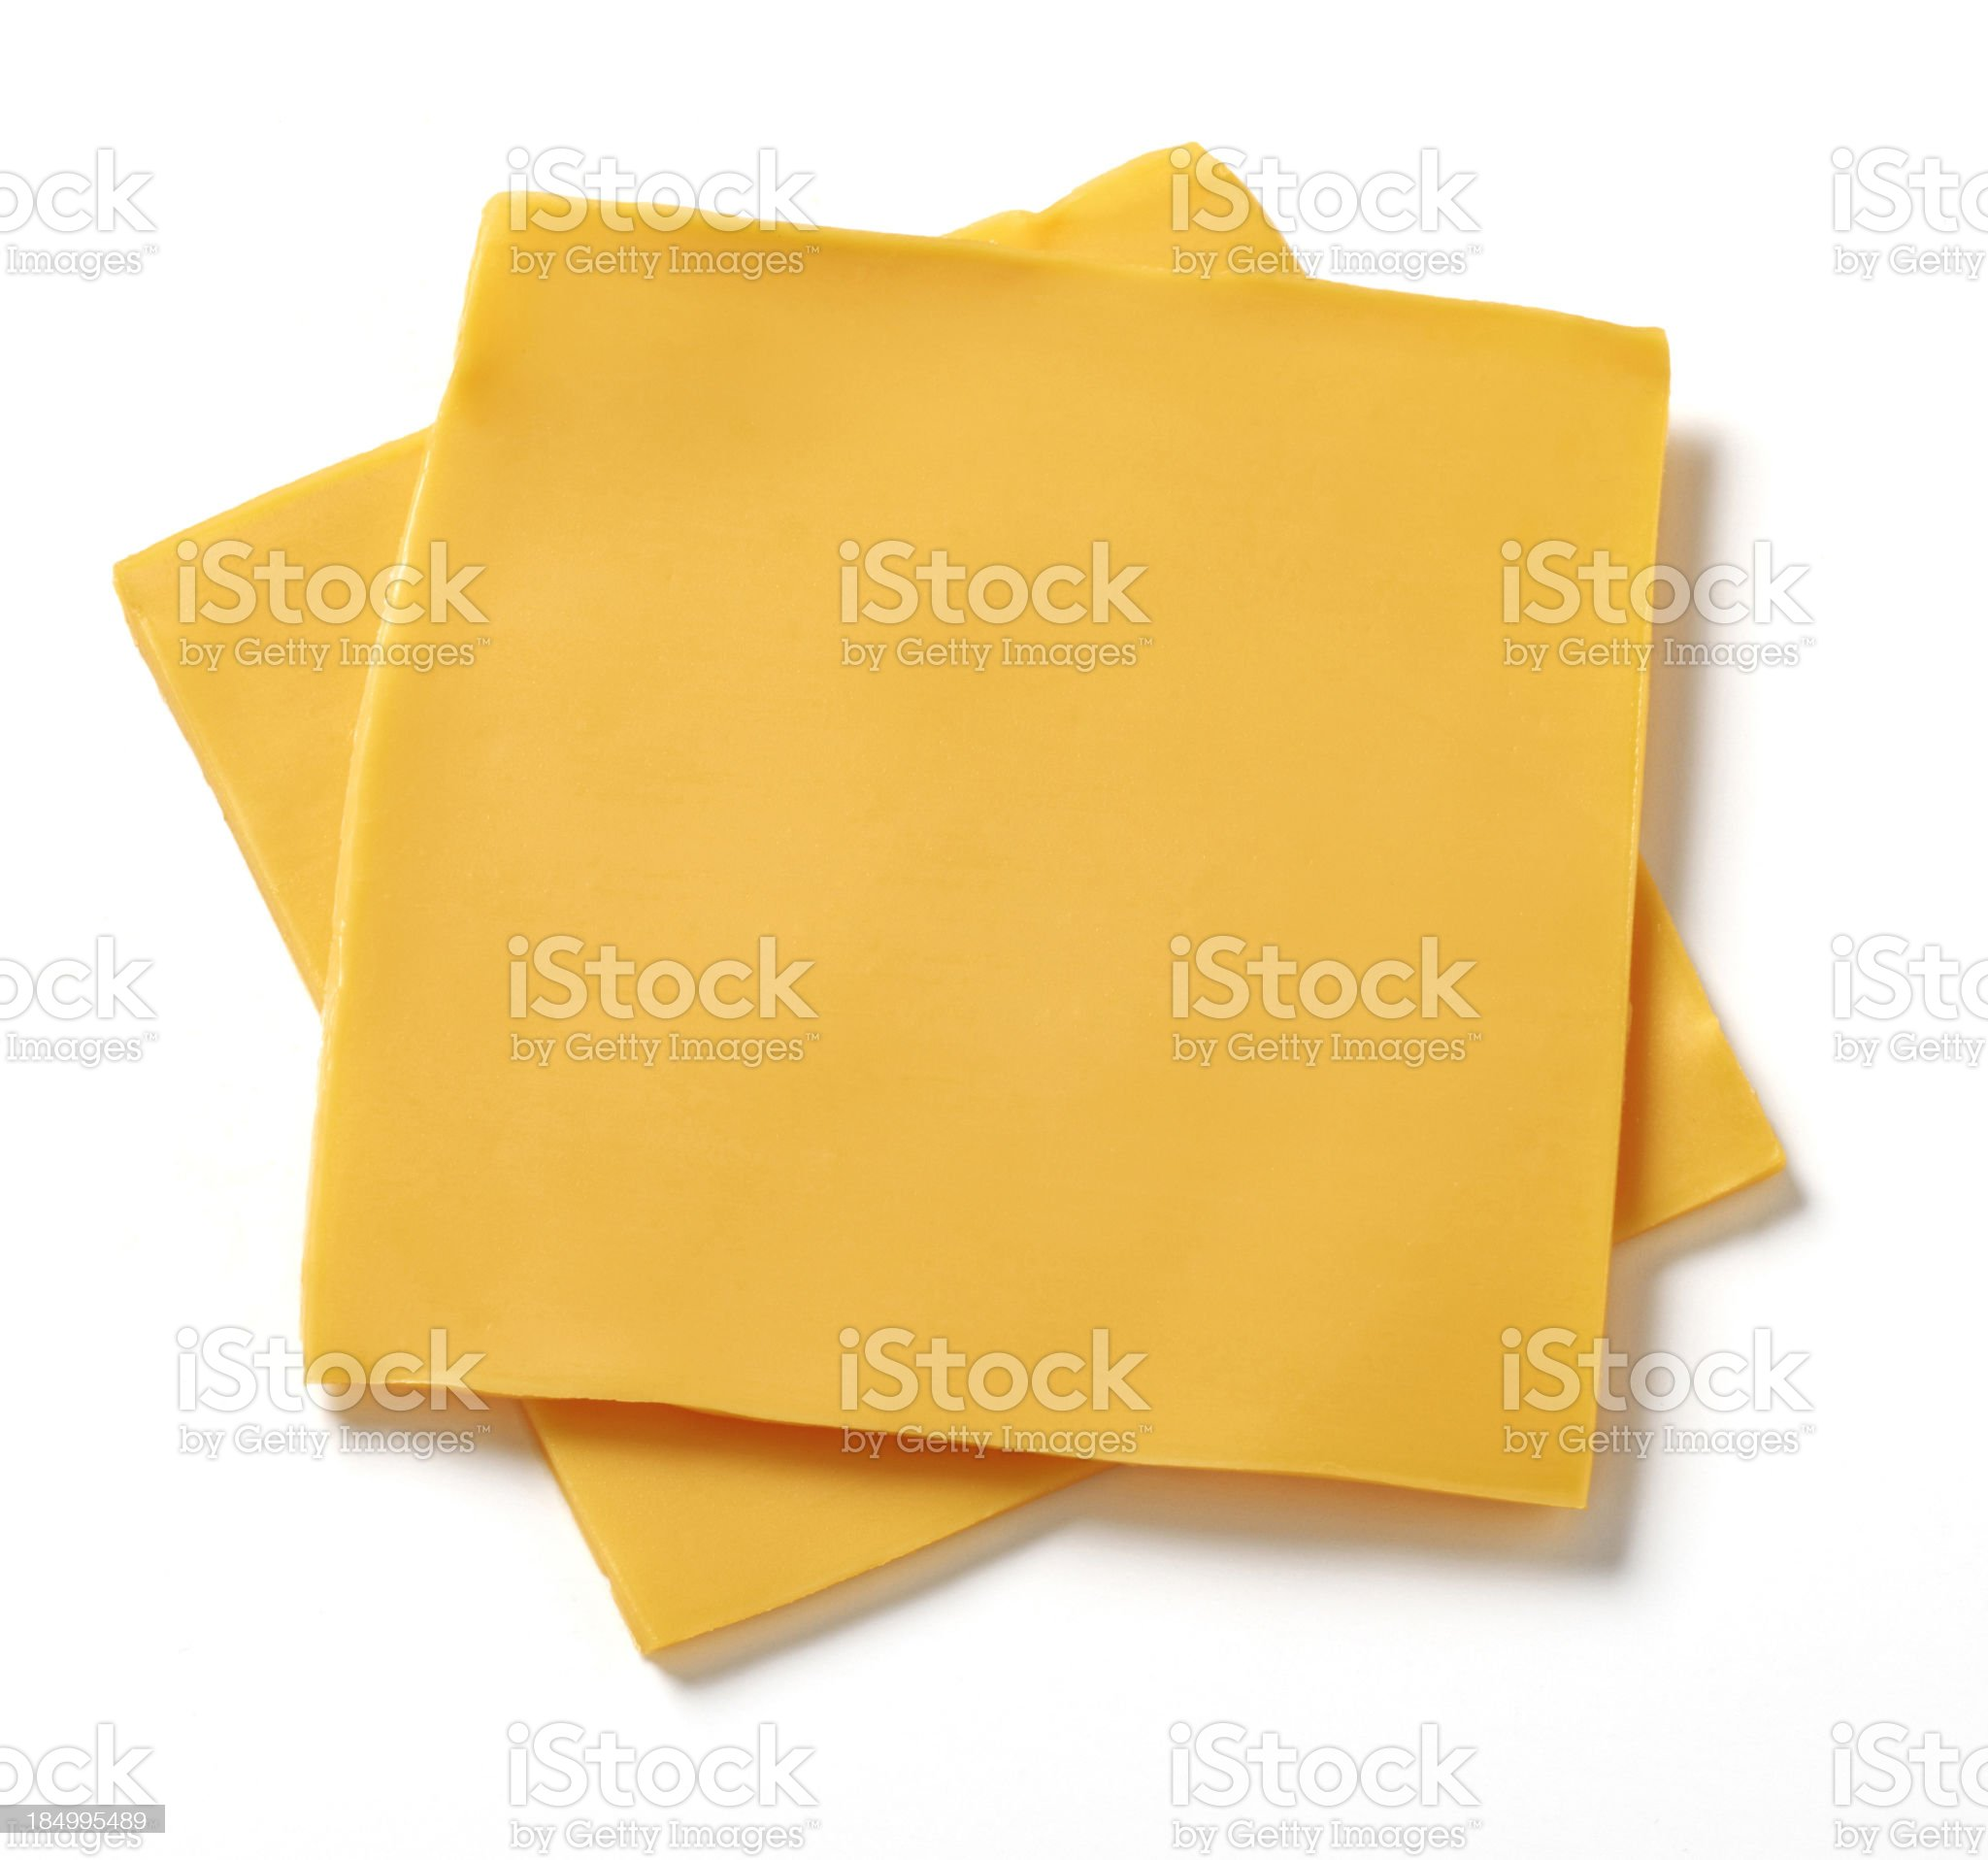 American Cheese Slices royalty-free stock photo